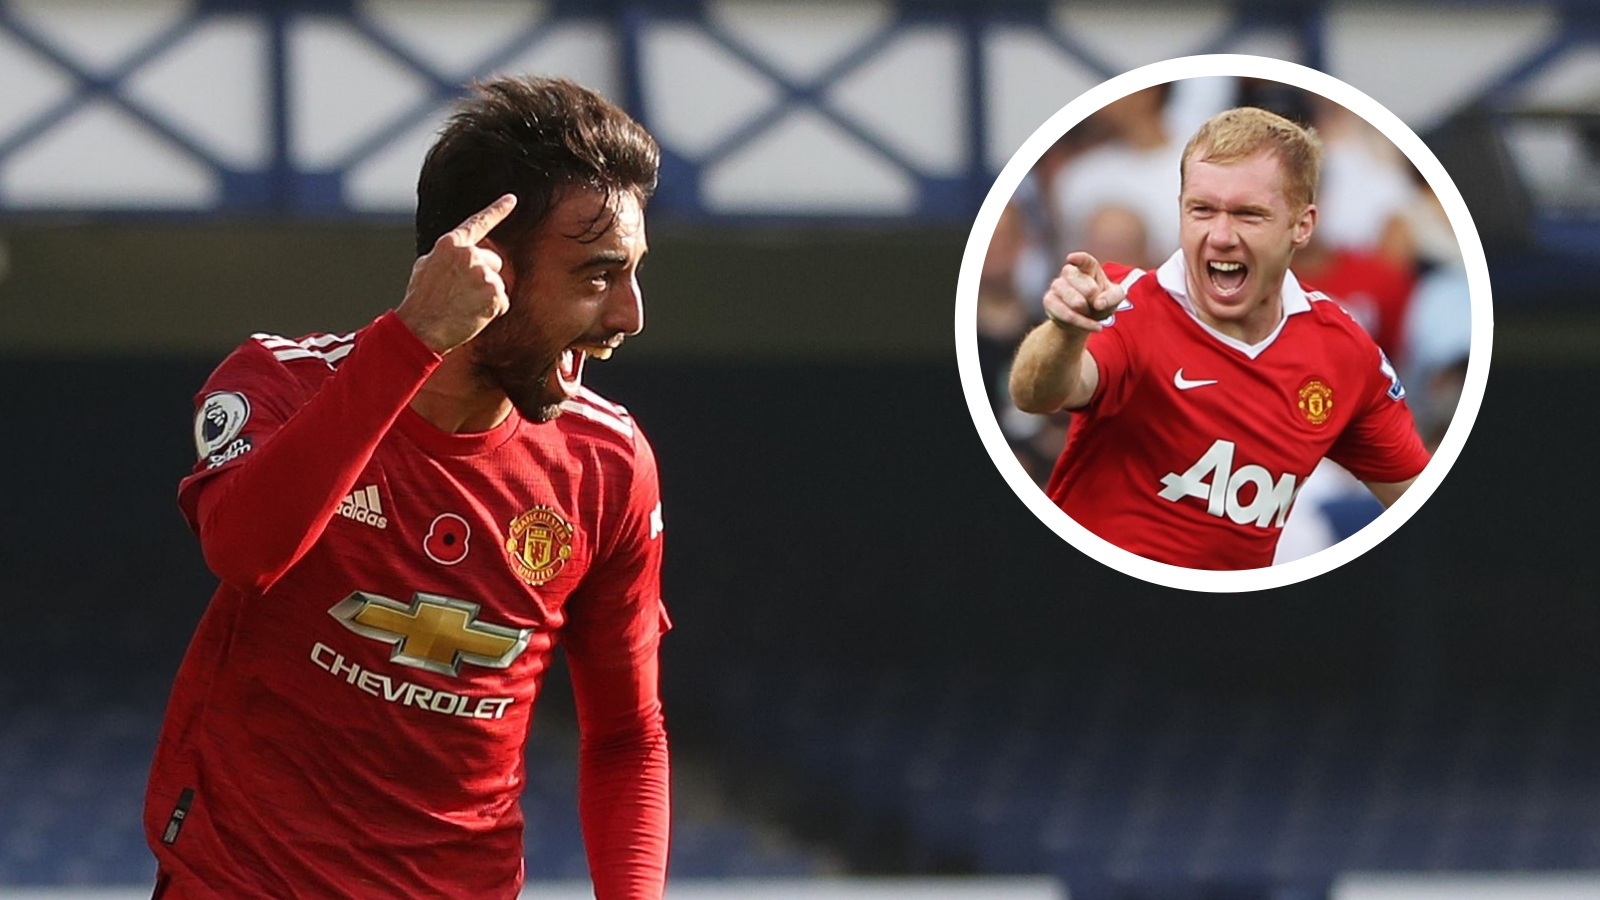 Scholes was one of the best midfielders in the world' - Fernandes eager to emulate  Man Utd legend   Goal.com